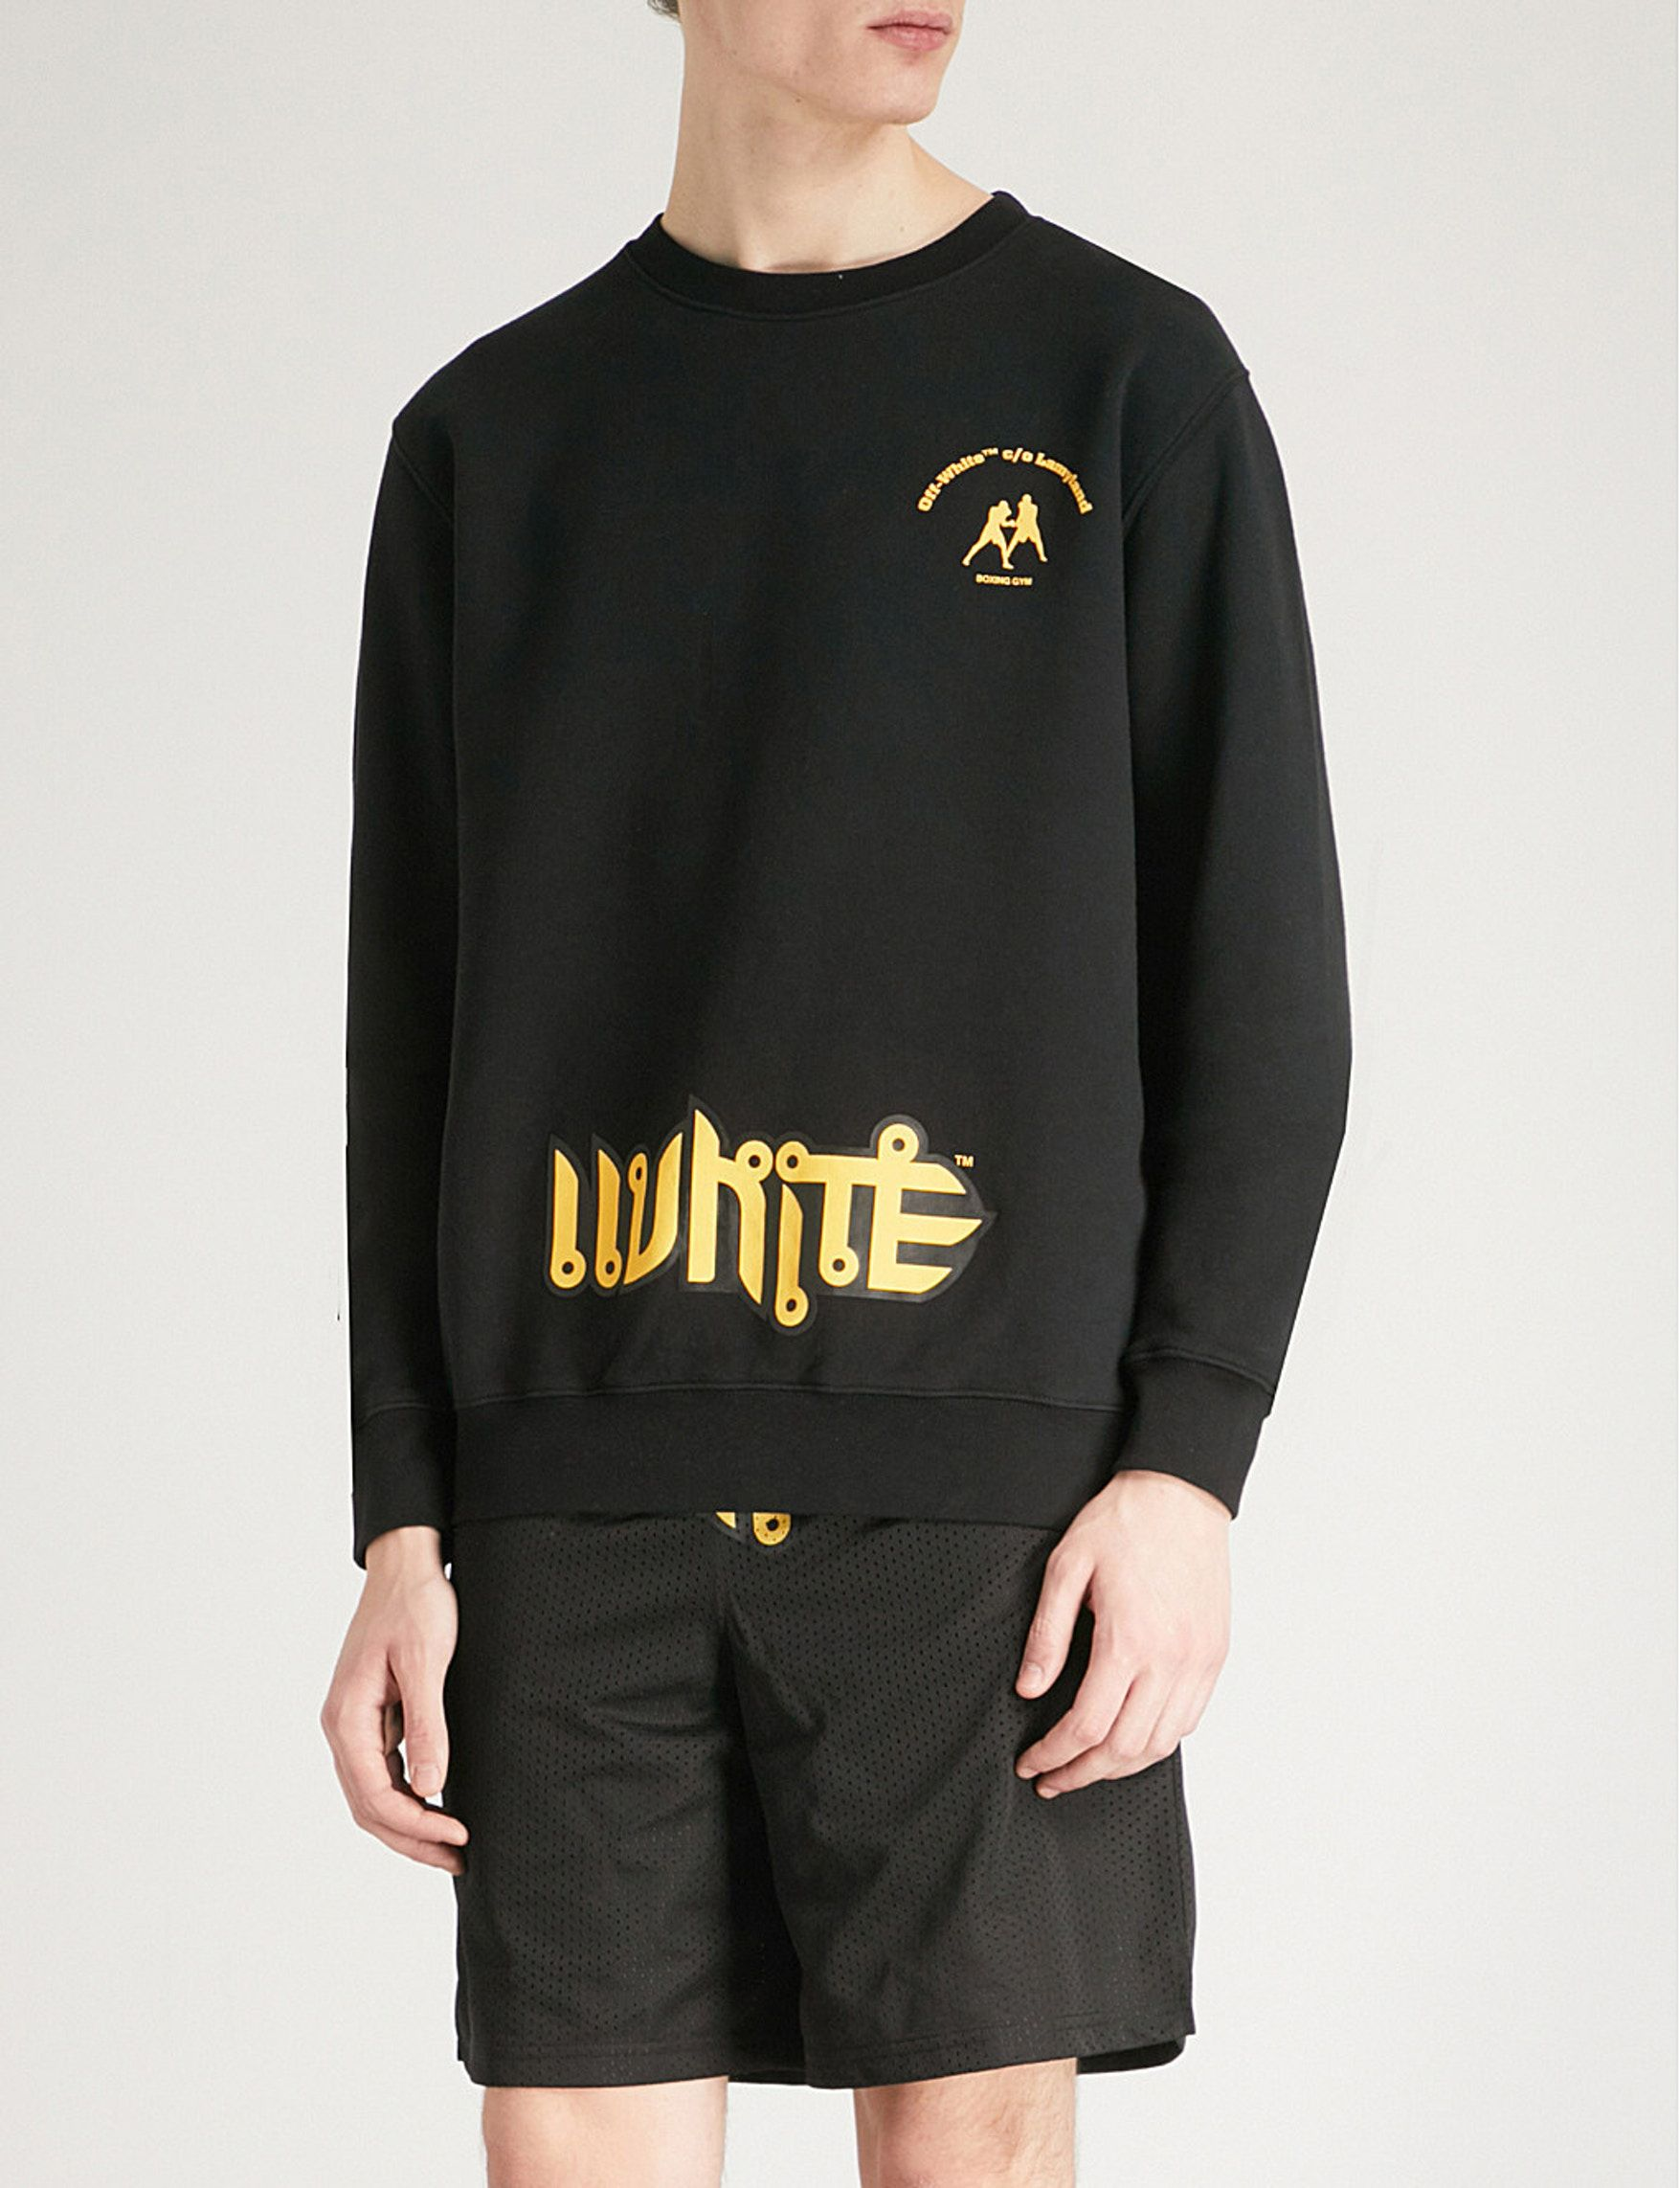 Off White Introduces Boxing Themed Lamyland Merchandise Boxing Clothes Mens Streetwear Jersey Sweatshirt [ 2285 x 1755 Pixel ]